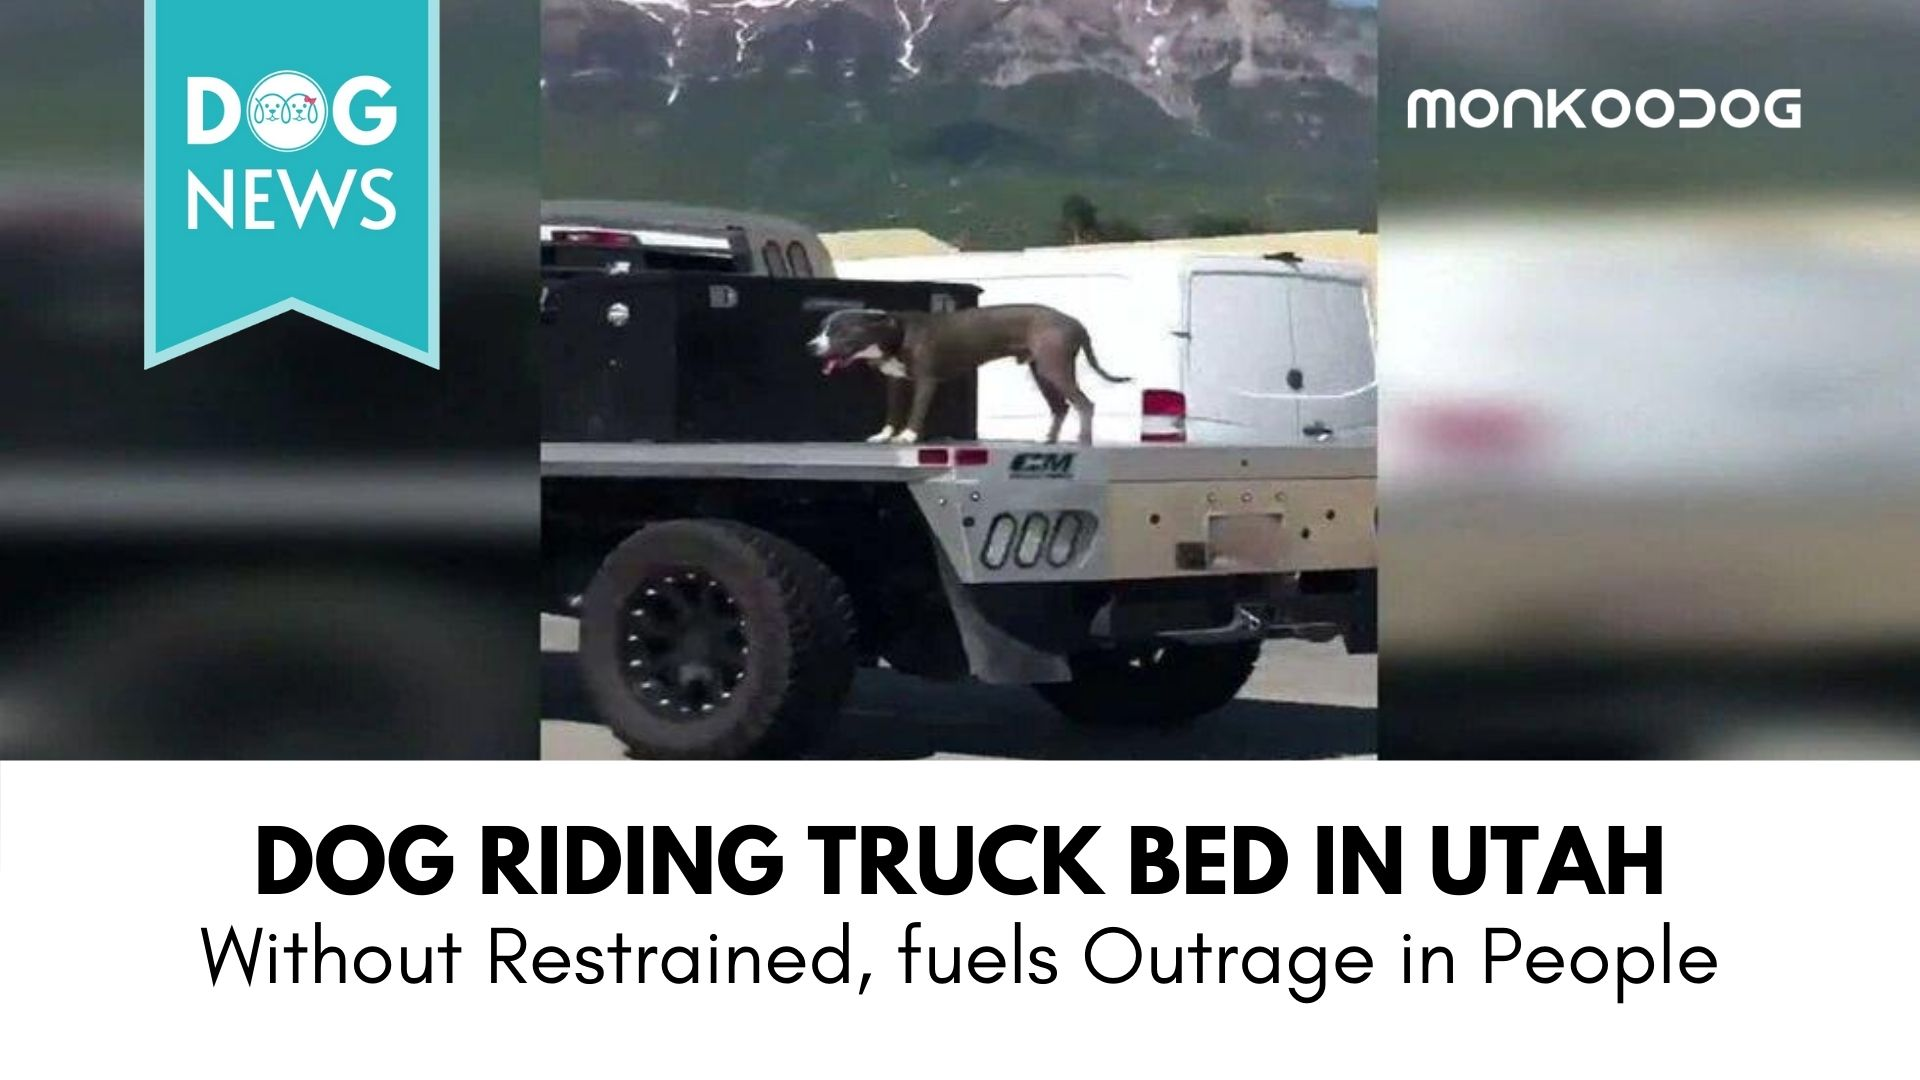 Video of a Dog on an Unrestrained Truck Bed Raises Concerns and Calls for Action.